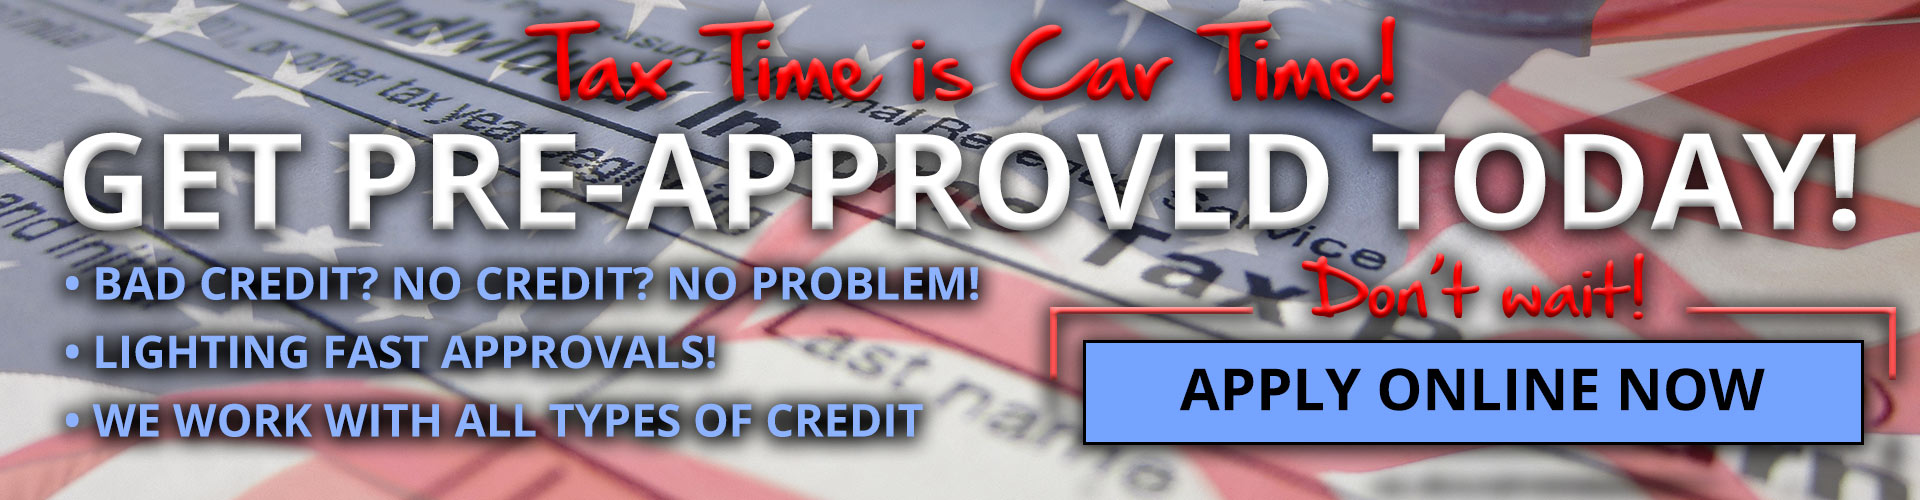 Tax Time is Car Time Get Pre-Approved